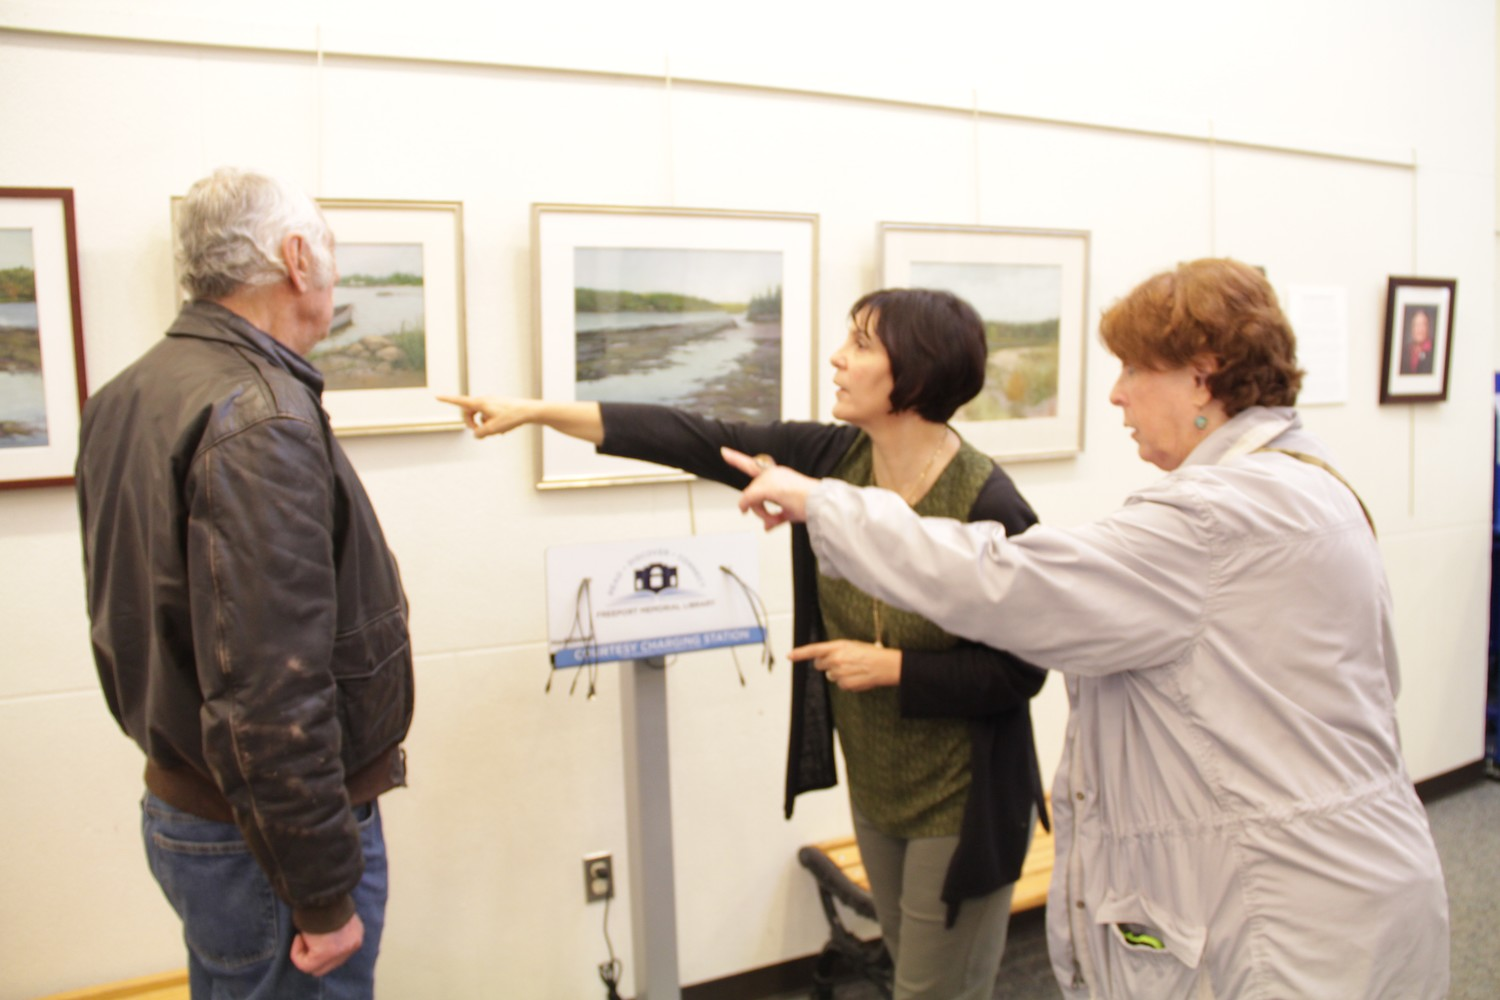 Bill Marinaccio, left talked about his wife's artwork with Freeporters, Laura Schoffer and Lois Howes, right.